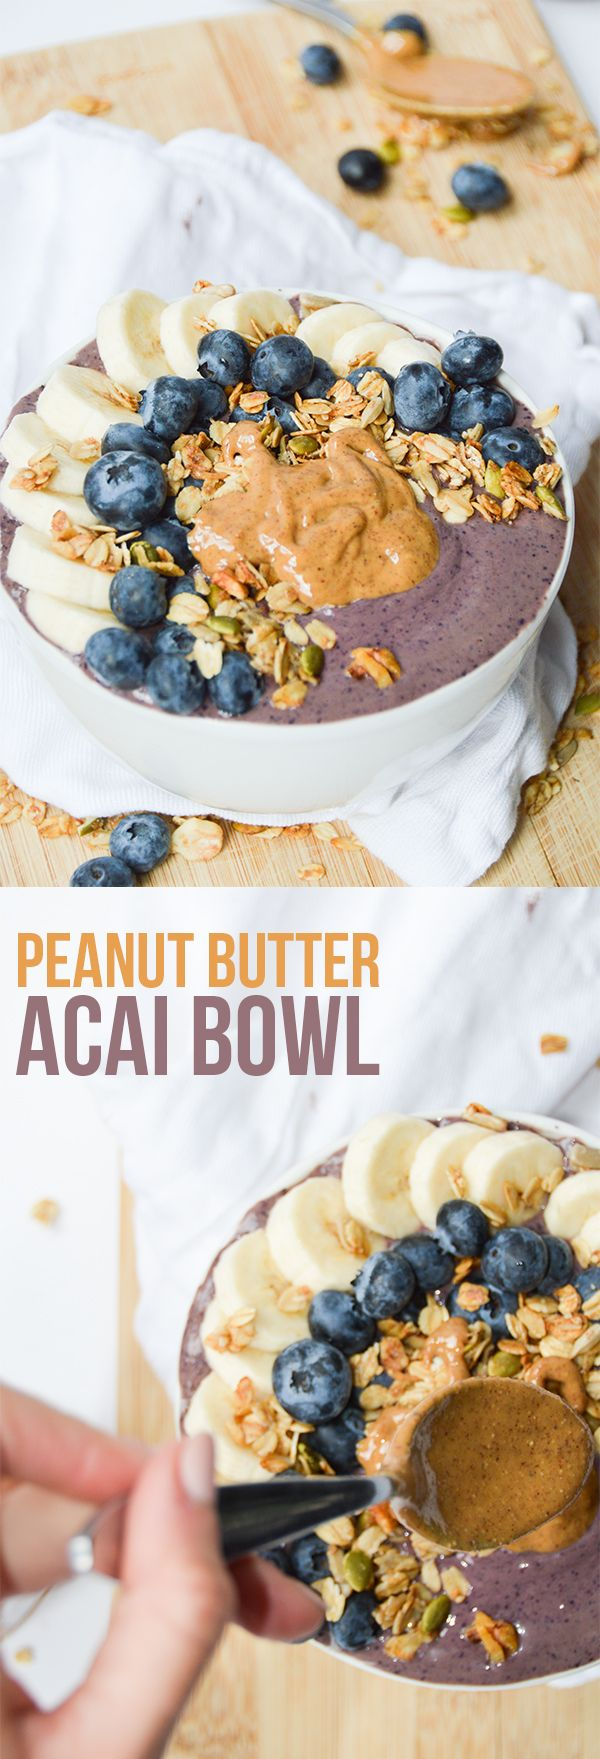 Peanut Butter Protein Acai Bowl - love smoothies but finish them feeling unsatisfied? Add some peanut butter, protein powder and a spoon for a refreshing but filling breakfast.